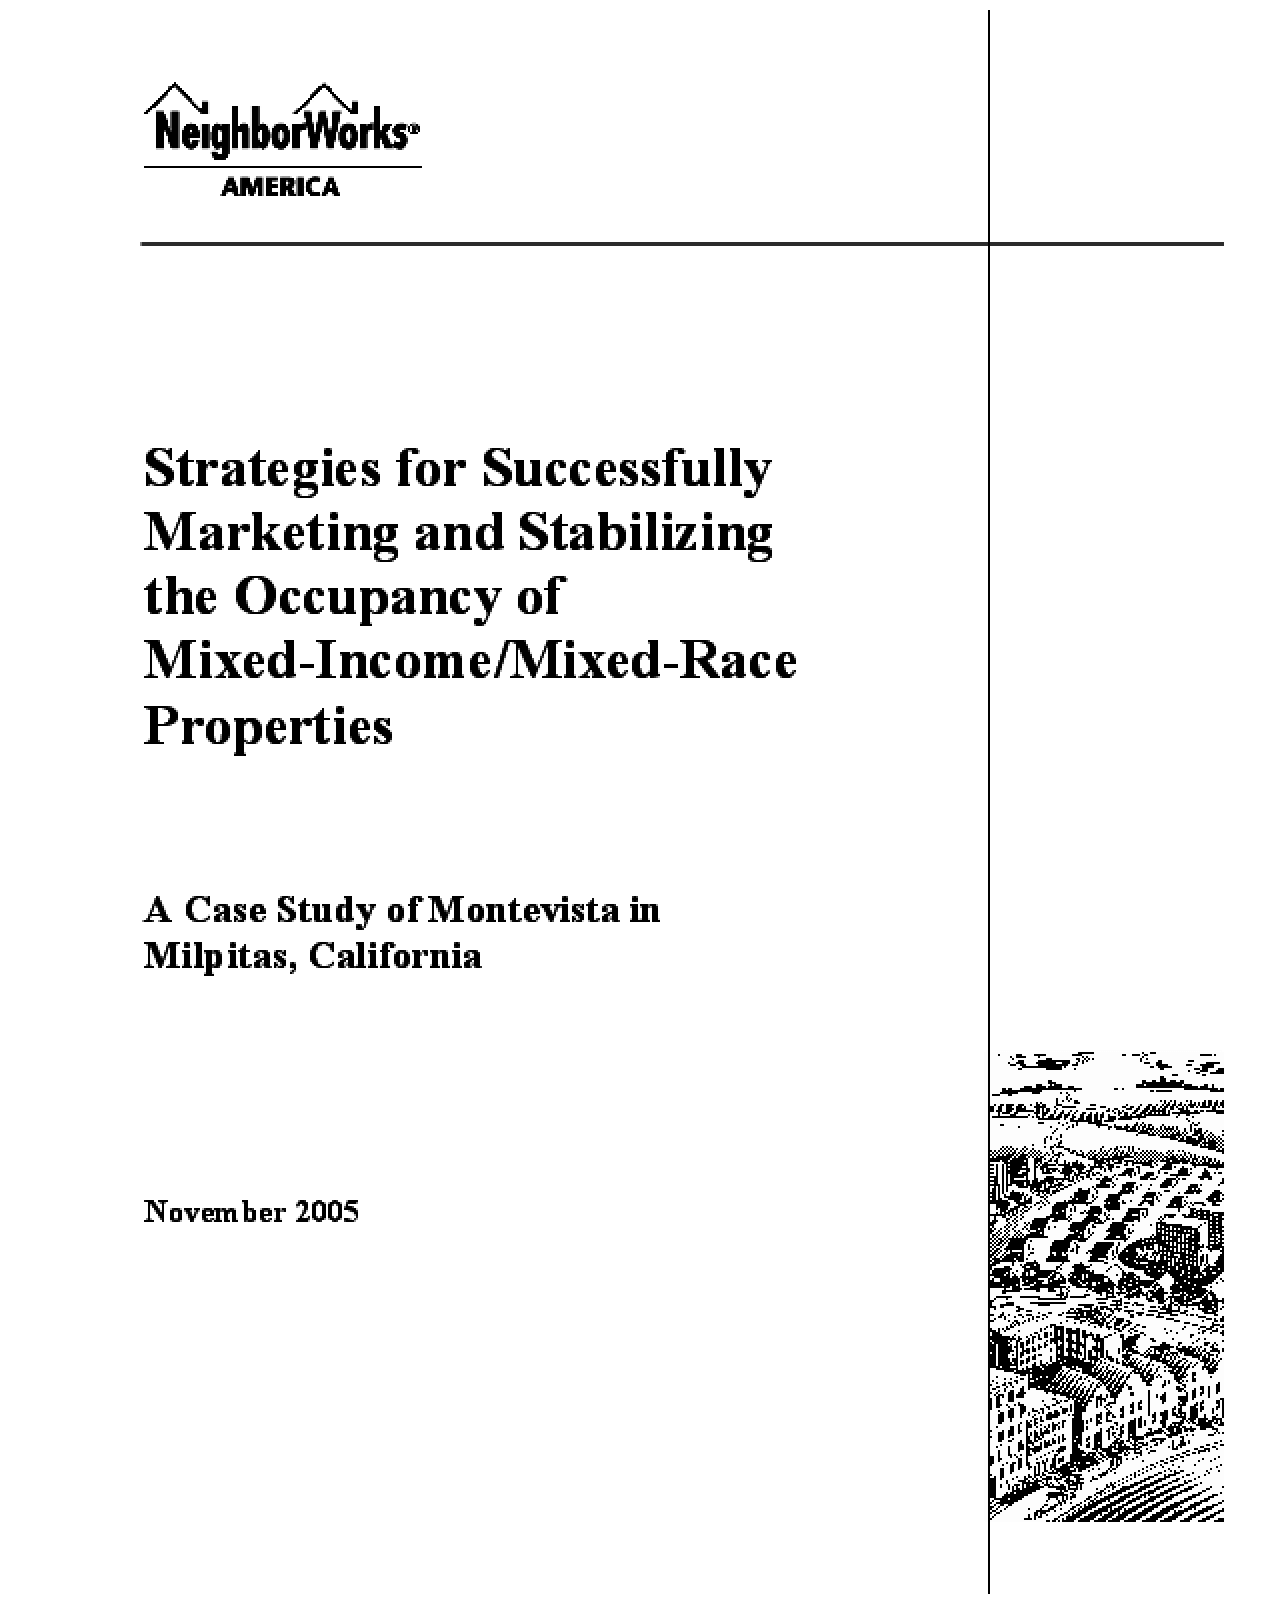 Strategies for Successfully Marketing and Stabilizing the Occupancy of Mixed-Income/Mixed-Race Properties: A Case Study of Montevista in Milpitas, California